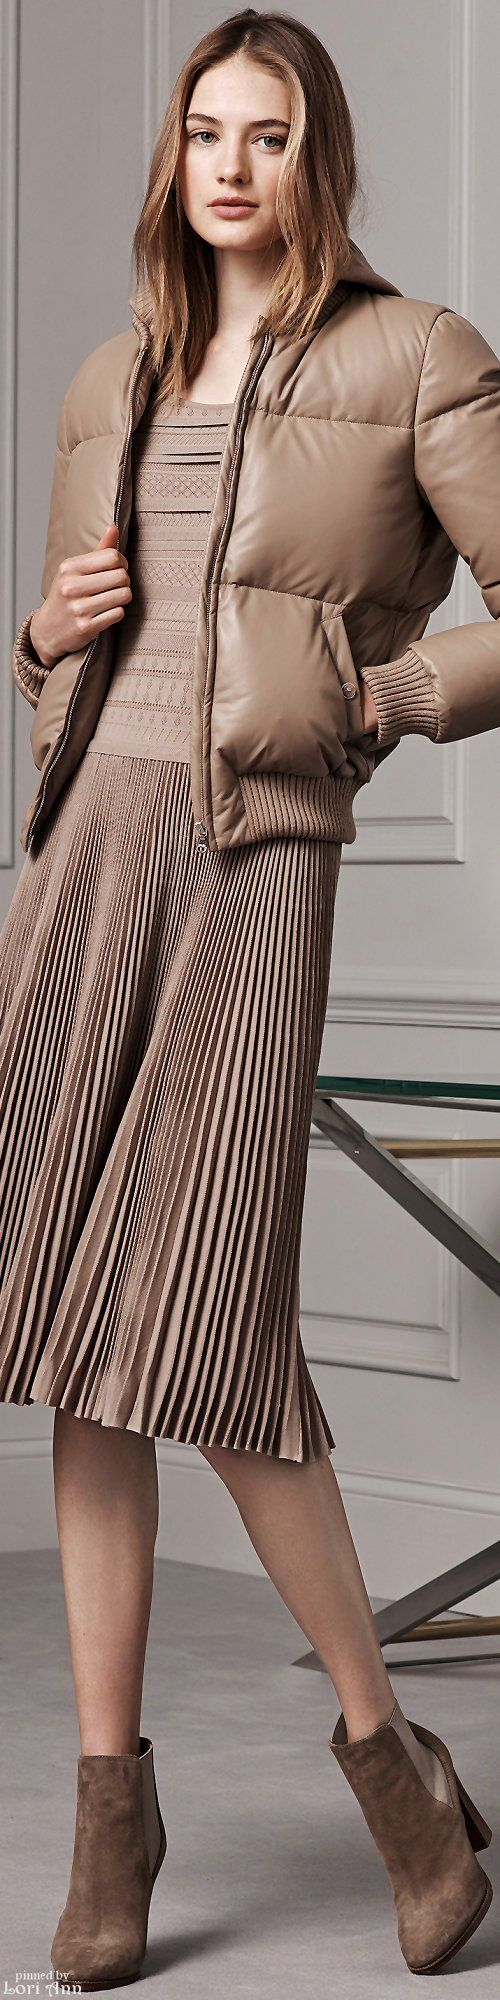 Ralph Lauren Pre-Fall 2016 women fashion outfit clothing stylish apparel @roressclothes closet ideas